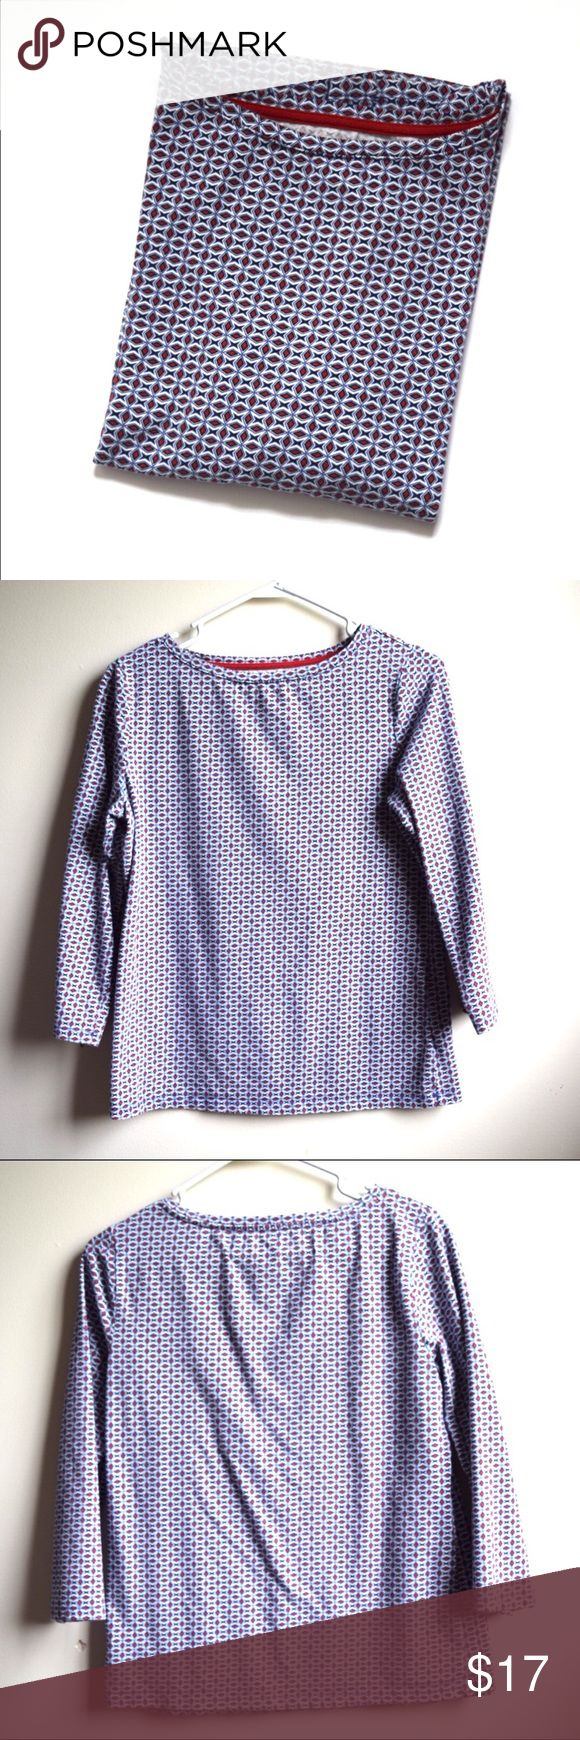 Talbots 3/4 Sleeve Tee Red, White, & Blue Pattern This geometric patterned tee would look nice with a white denim vest! It has 3/4 length sleeves and the pattern is in red, white, and blue. Feel free to make an offer! Talbots Tops Tees - Long Sleeve